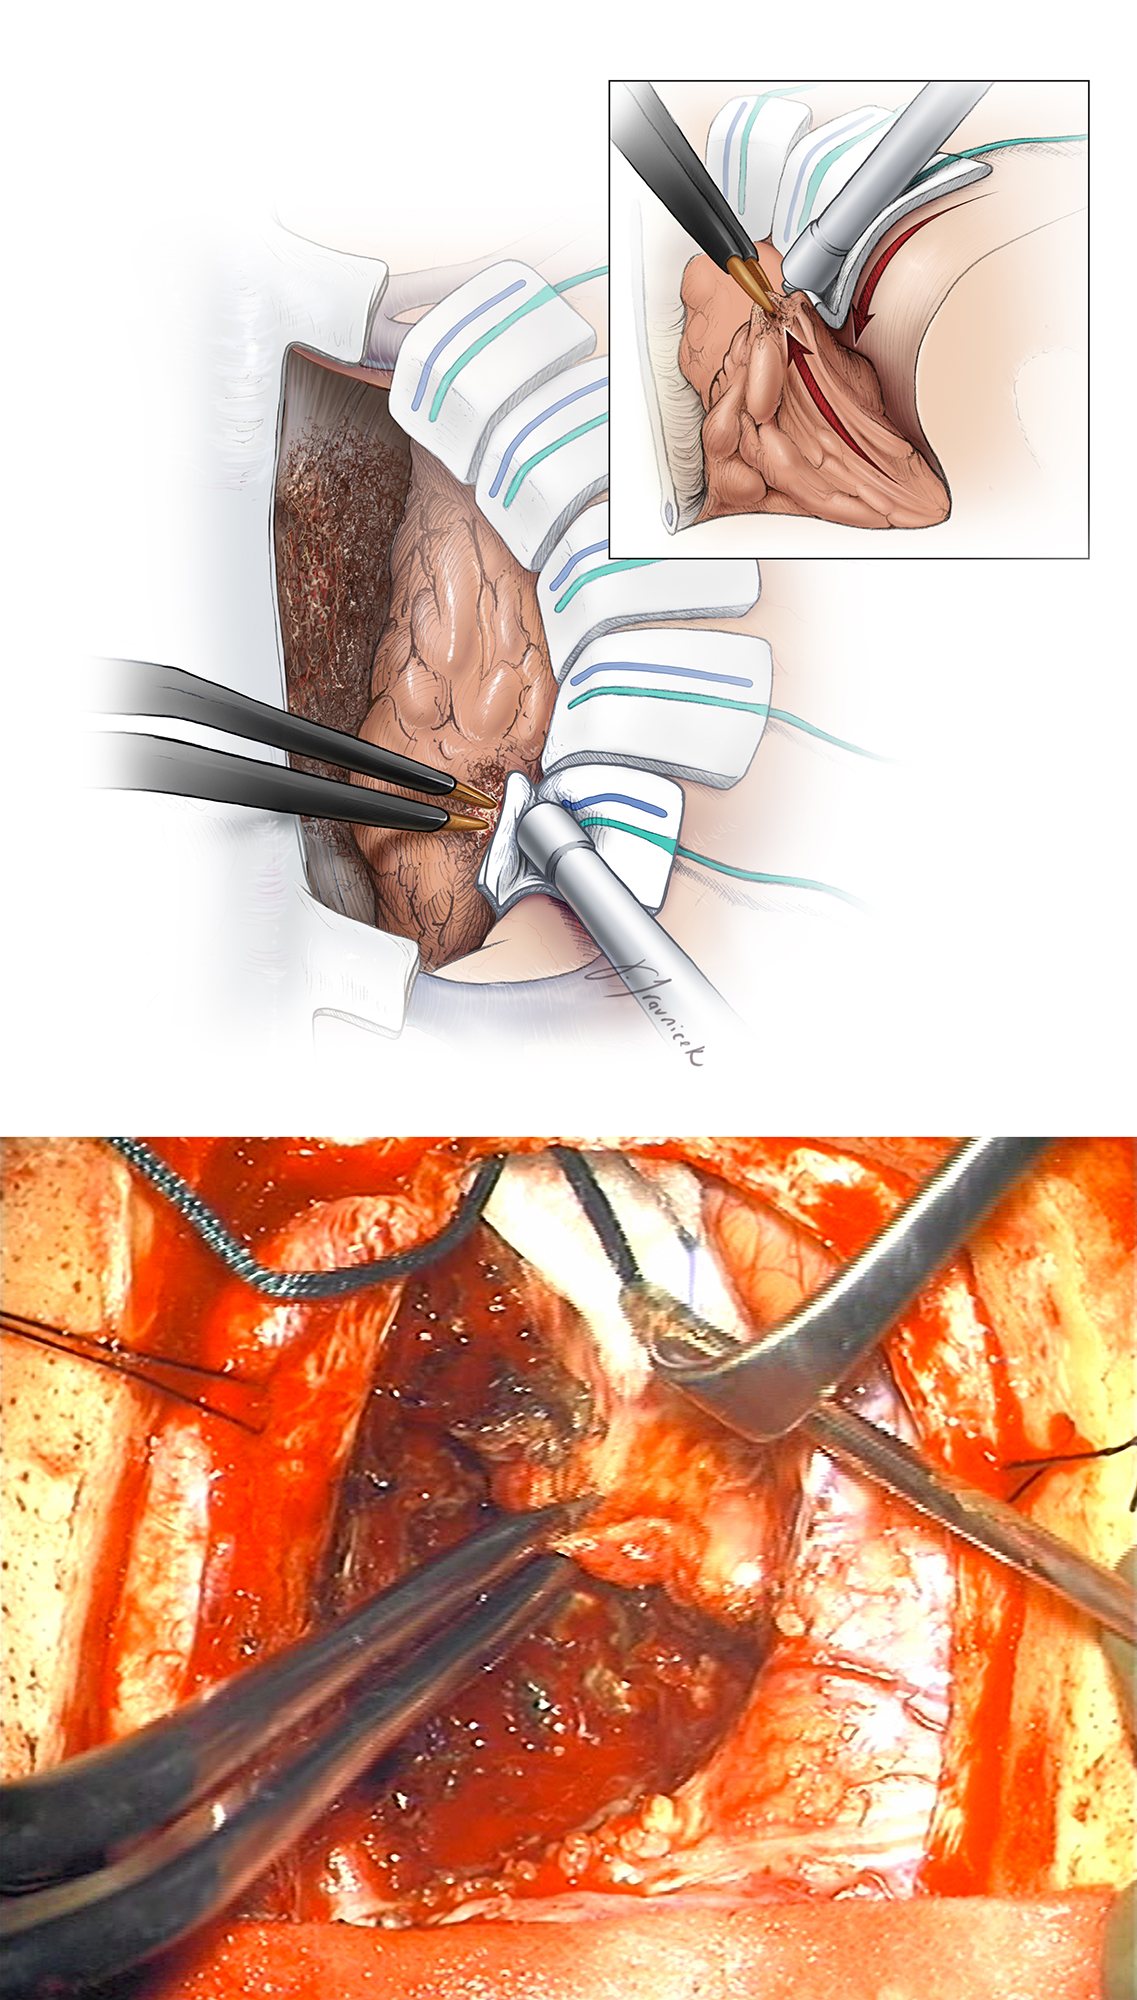 "Figure 8: Next, the tumor capsule is sharply dissected away from the surrounding brain. As the tumor capsule is progressively shrunken away from the cortex using bipolar electrocautery, cottonoid patties are used to circumferentially cover the brain as well as develop and maintain a plane between the tumor capsule and the pia. Notice that the plane is developed along the circumference of the tumor evenly instead of superficially to deep in a single spot. This allows easier mobilization of the mass and avoids small working areas in case of bleeding.    If the pial integrity is violated, cottonoid patties are used to ""wipe"" the brain away from the tumor while the tumor capsule is drawn into the resection cavity (upper image inset and lower intraoperative photo). These patties are 'rolled' into the deepest aspects of the resection cavity to facilitate tumor delivery. Critical vessels may be adherent to the tumor capsule and are microsurgically and sharply dissected. The tumor capsule is then freed at its deepest aspect and carefully excised."